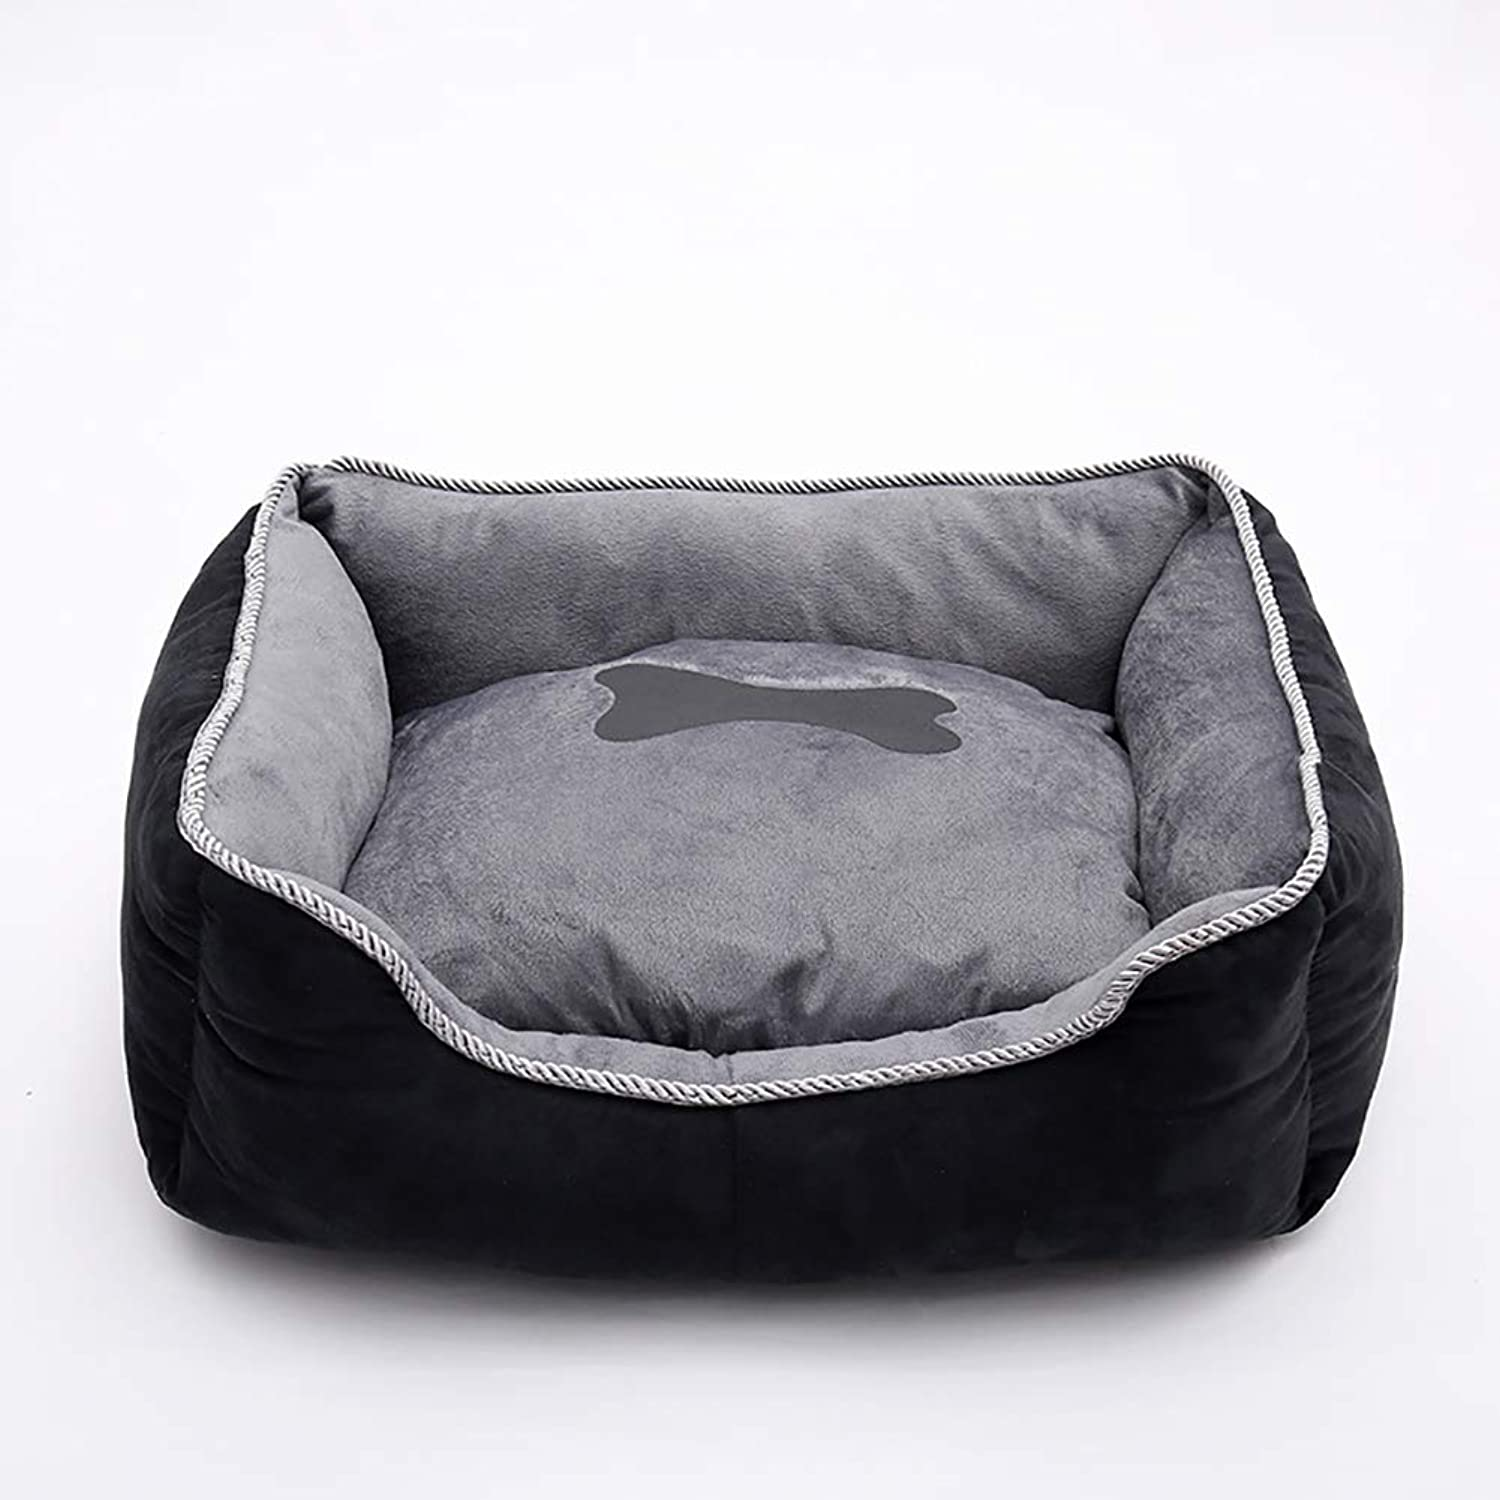 Dog Bed,Super Soft Pet Sofa Cats Bed,Pet Self Warming Beds Plush Rectangle Nest Puppy Sleeping Bag Cushion,Removable Washable NonSlip Waterproof,A,44×35×19cm